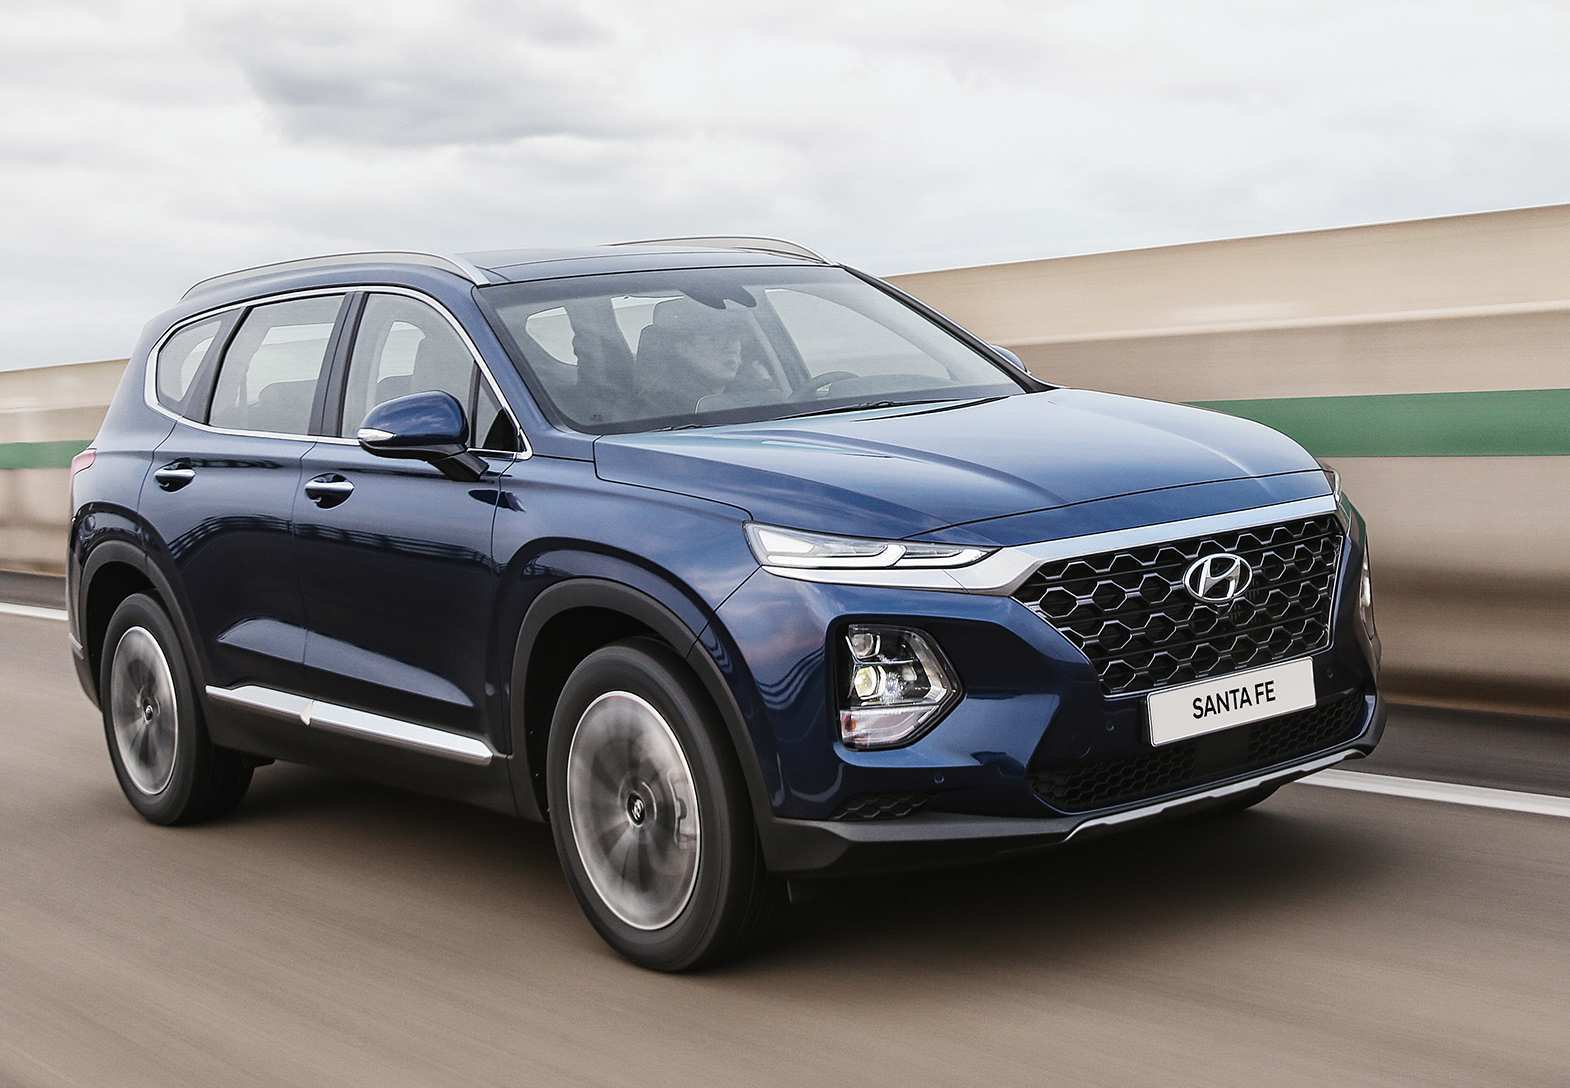 11 Great The Santa Fe Kia 2019 Rumors Performance for The Santa Fe Kia 2019 Rumors